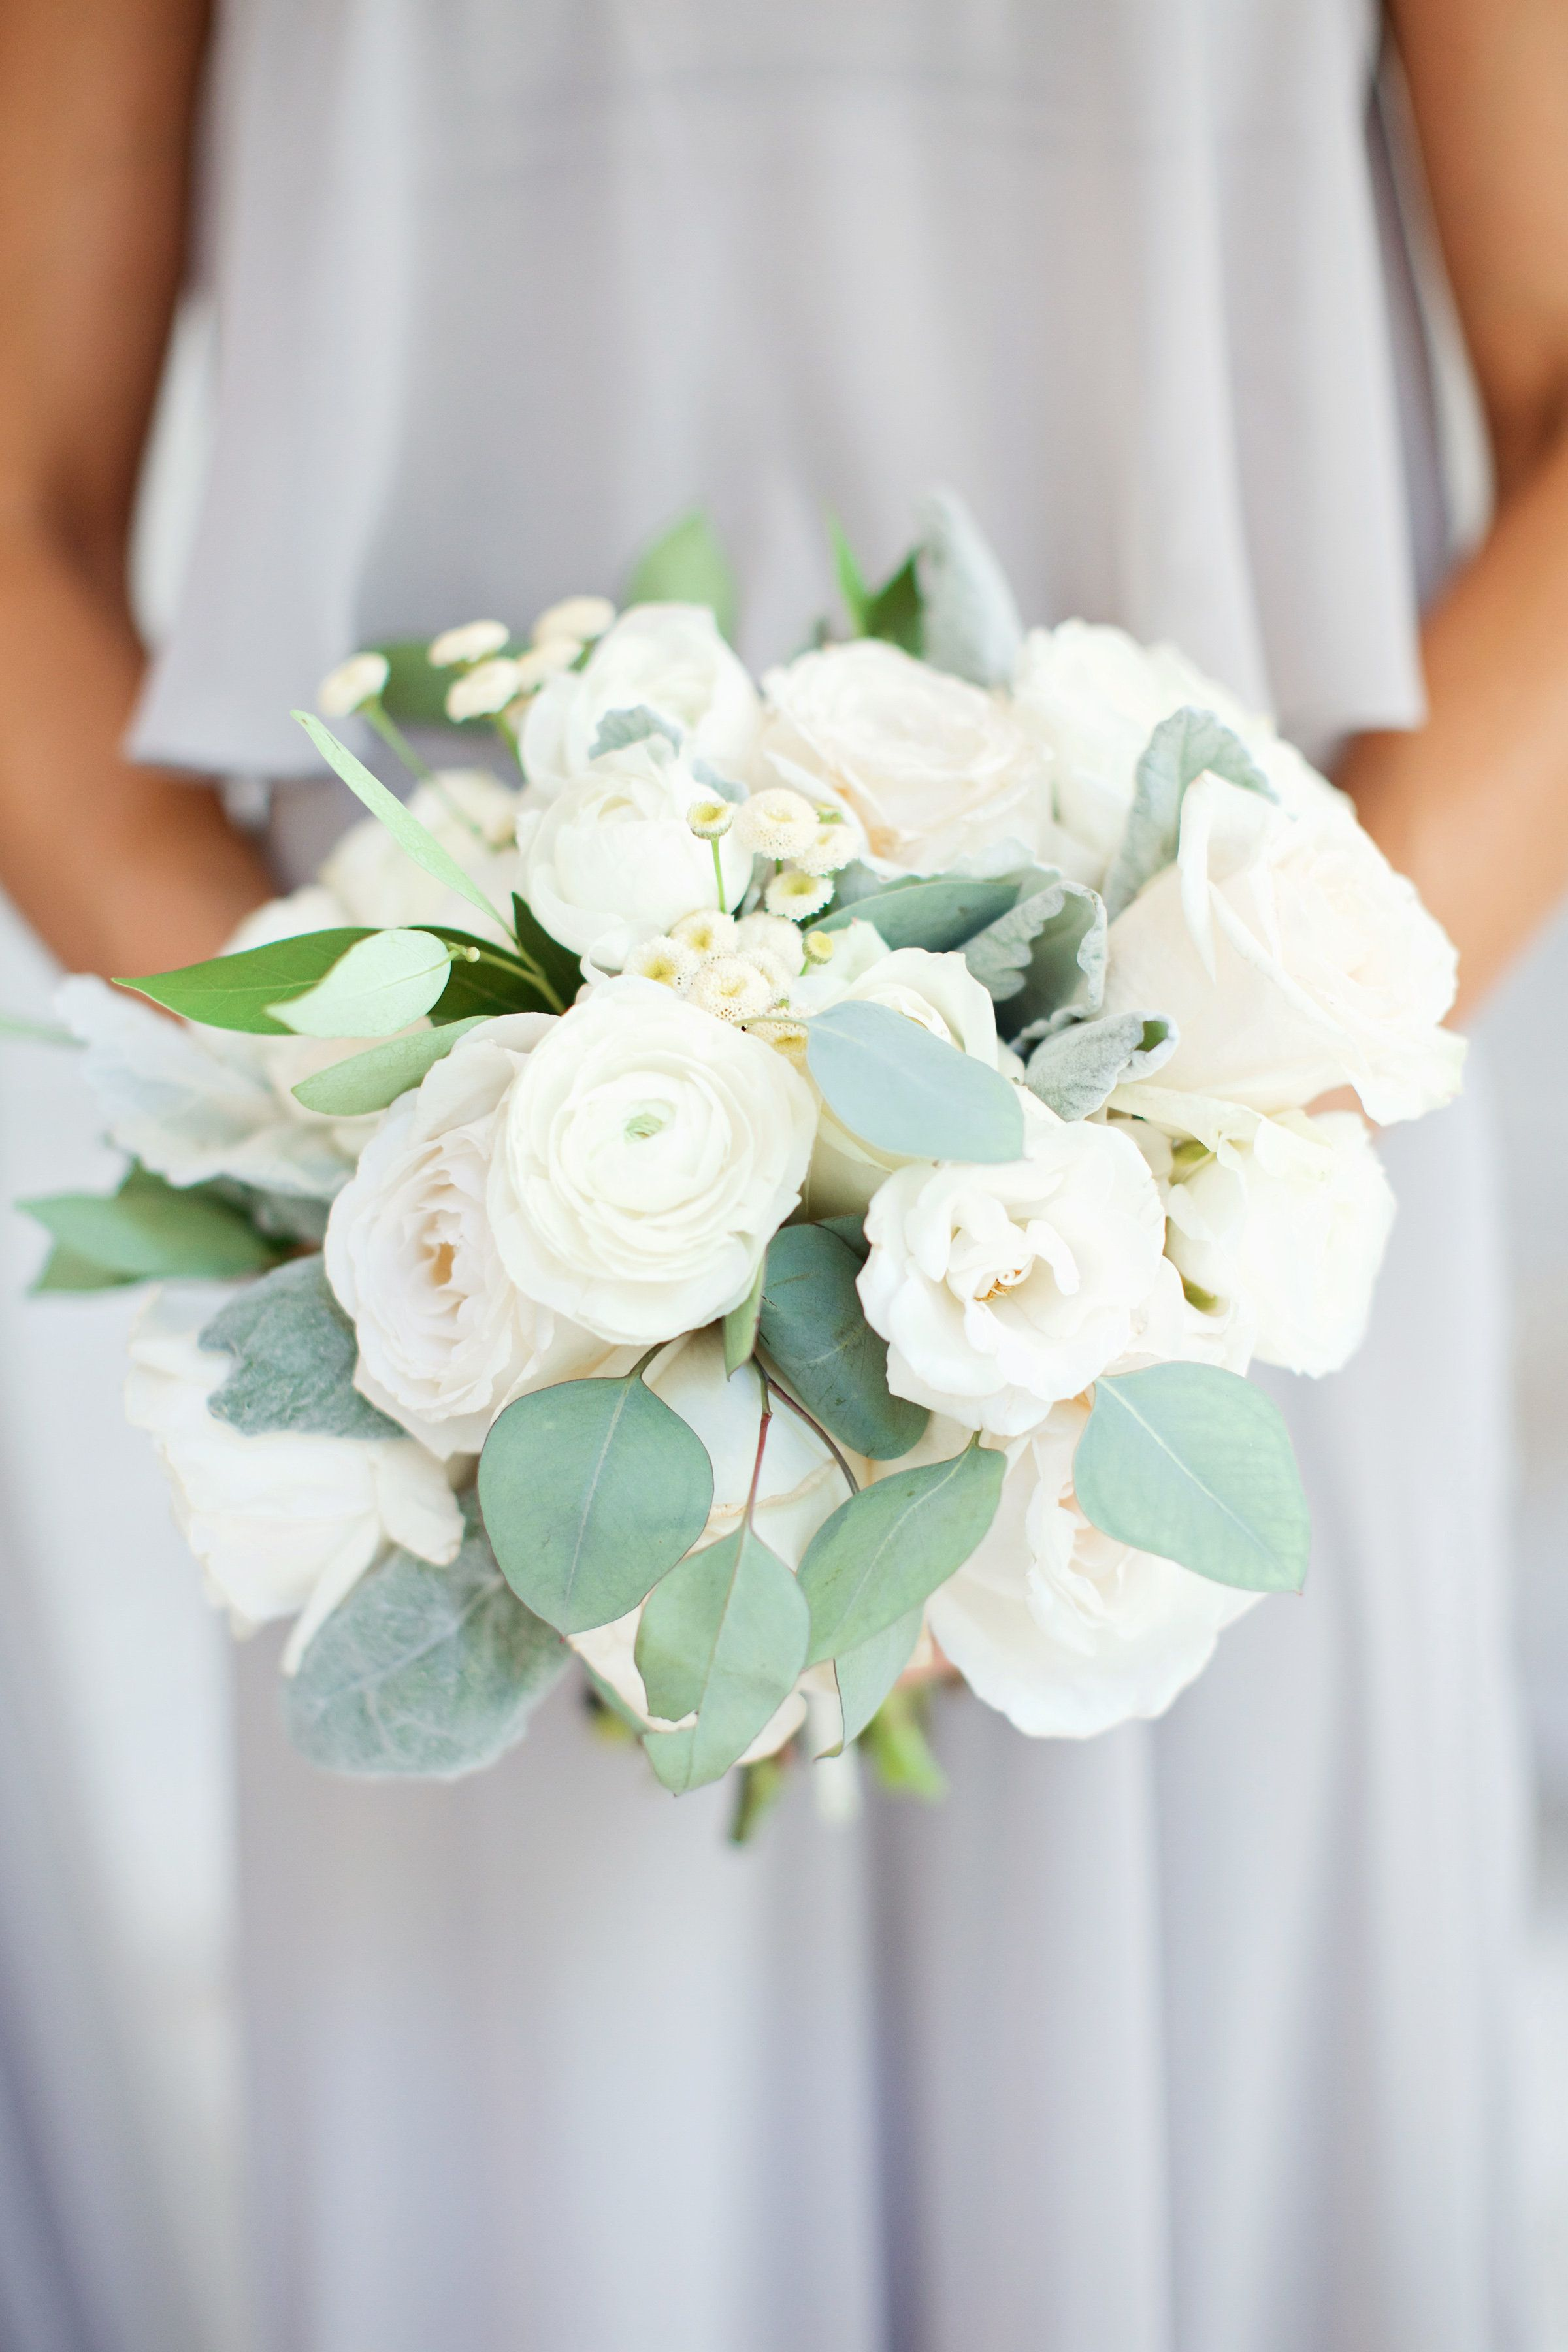 Classic All White Bridesmaids Bouquet Of White Garden Roses White Ranunculus White Sp Wedding Flowers White Roses Bridesmaid Bouquet White Bridesmaid Flowers